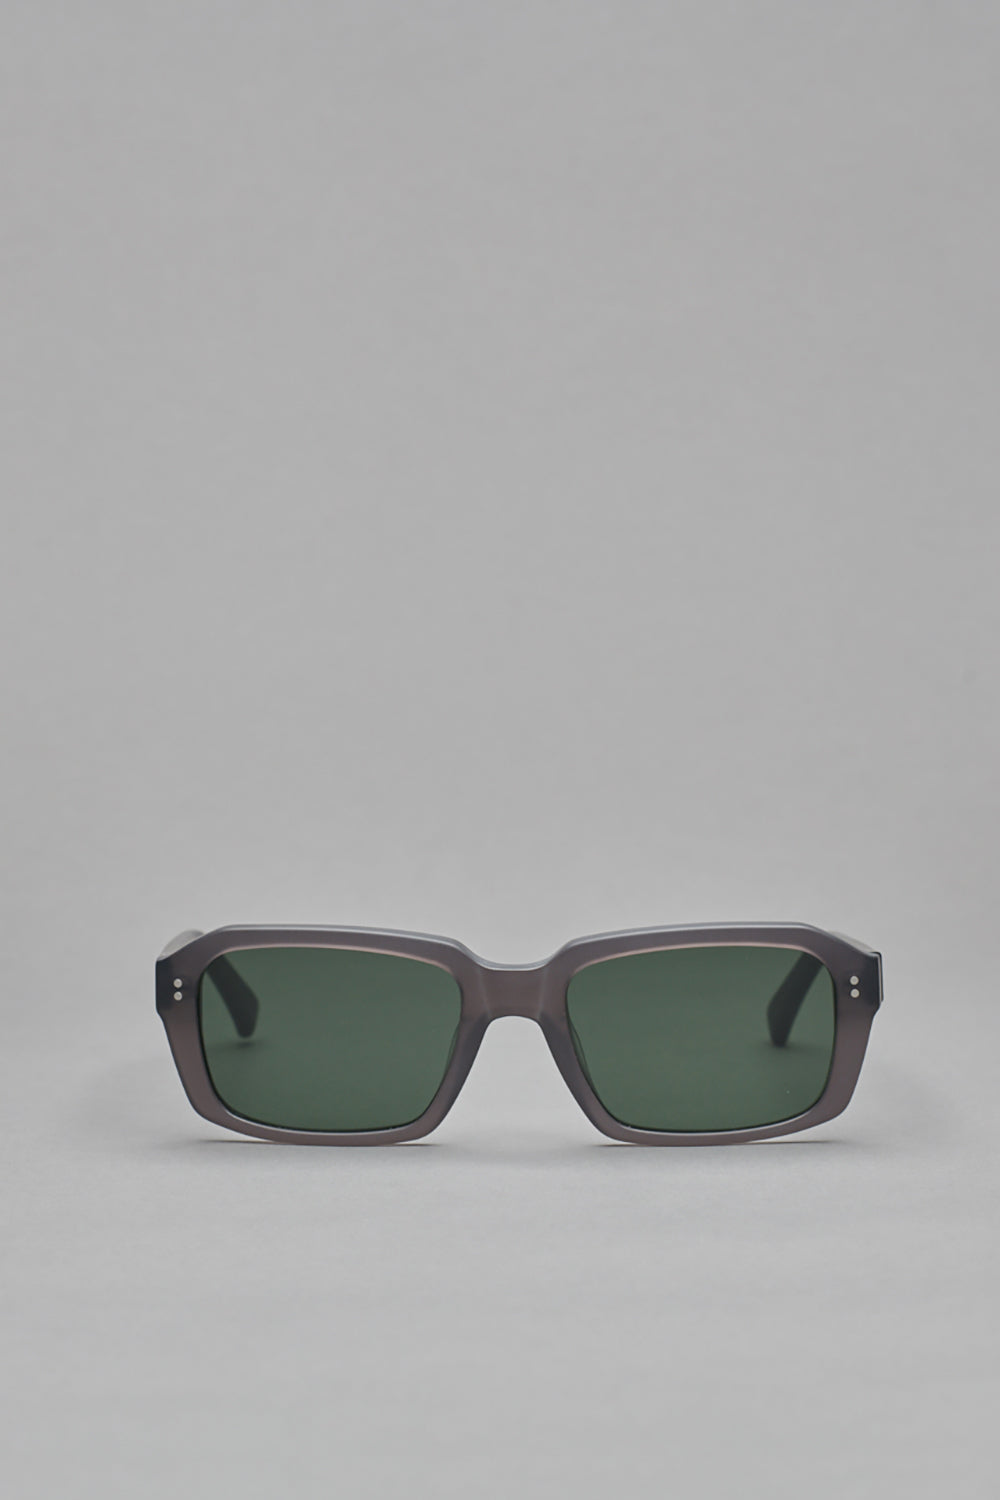 52/C4 Sunglasses